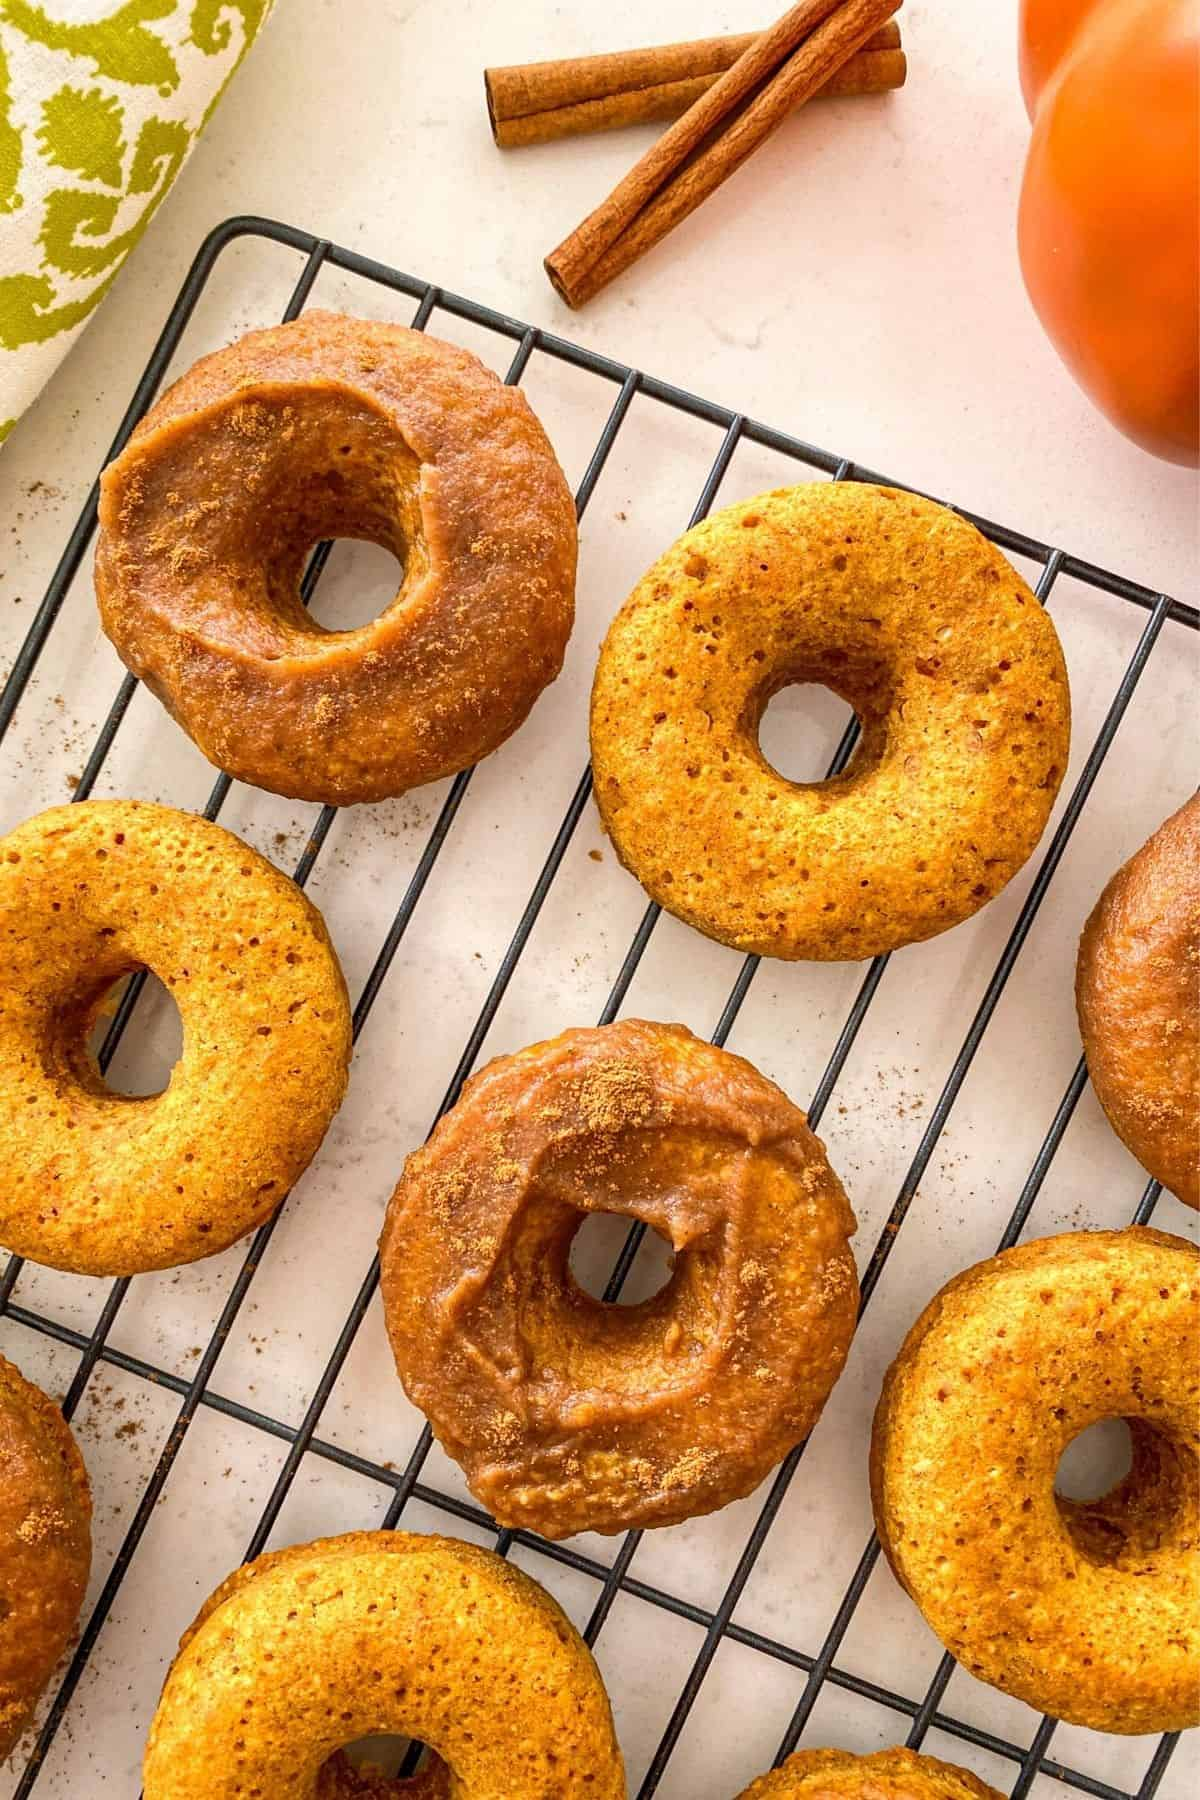 Pumpkin donuts on cooling rack with half plain and half glazed.